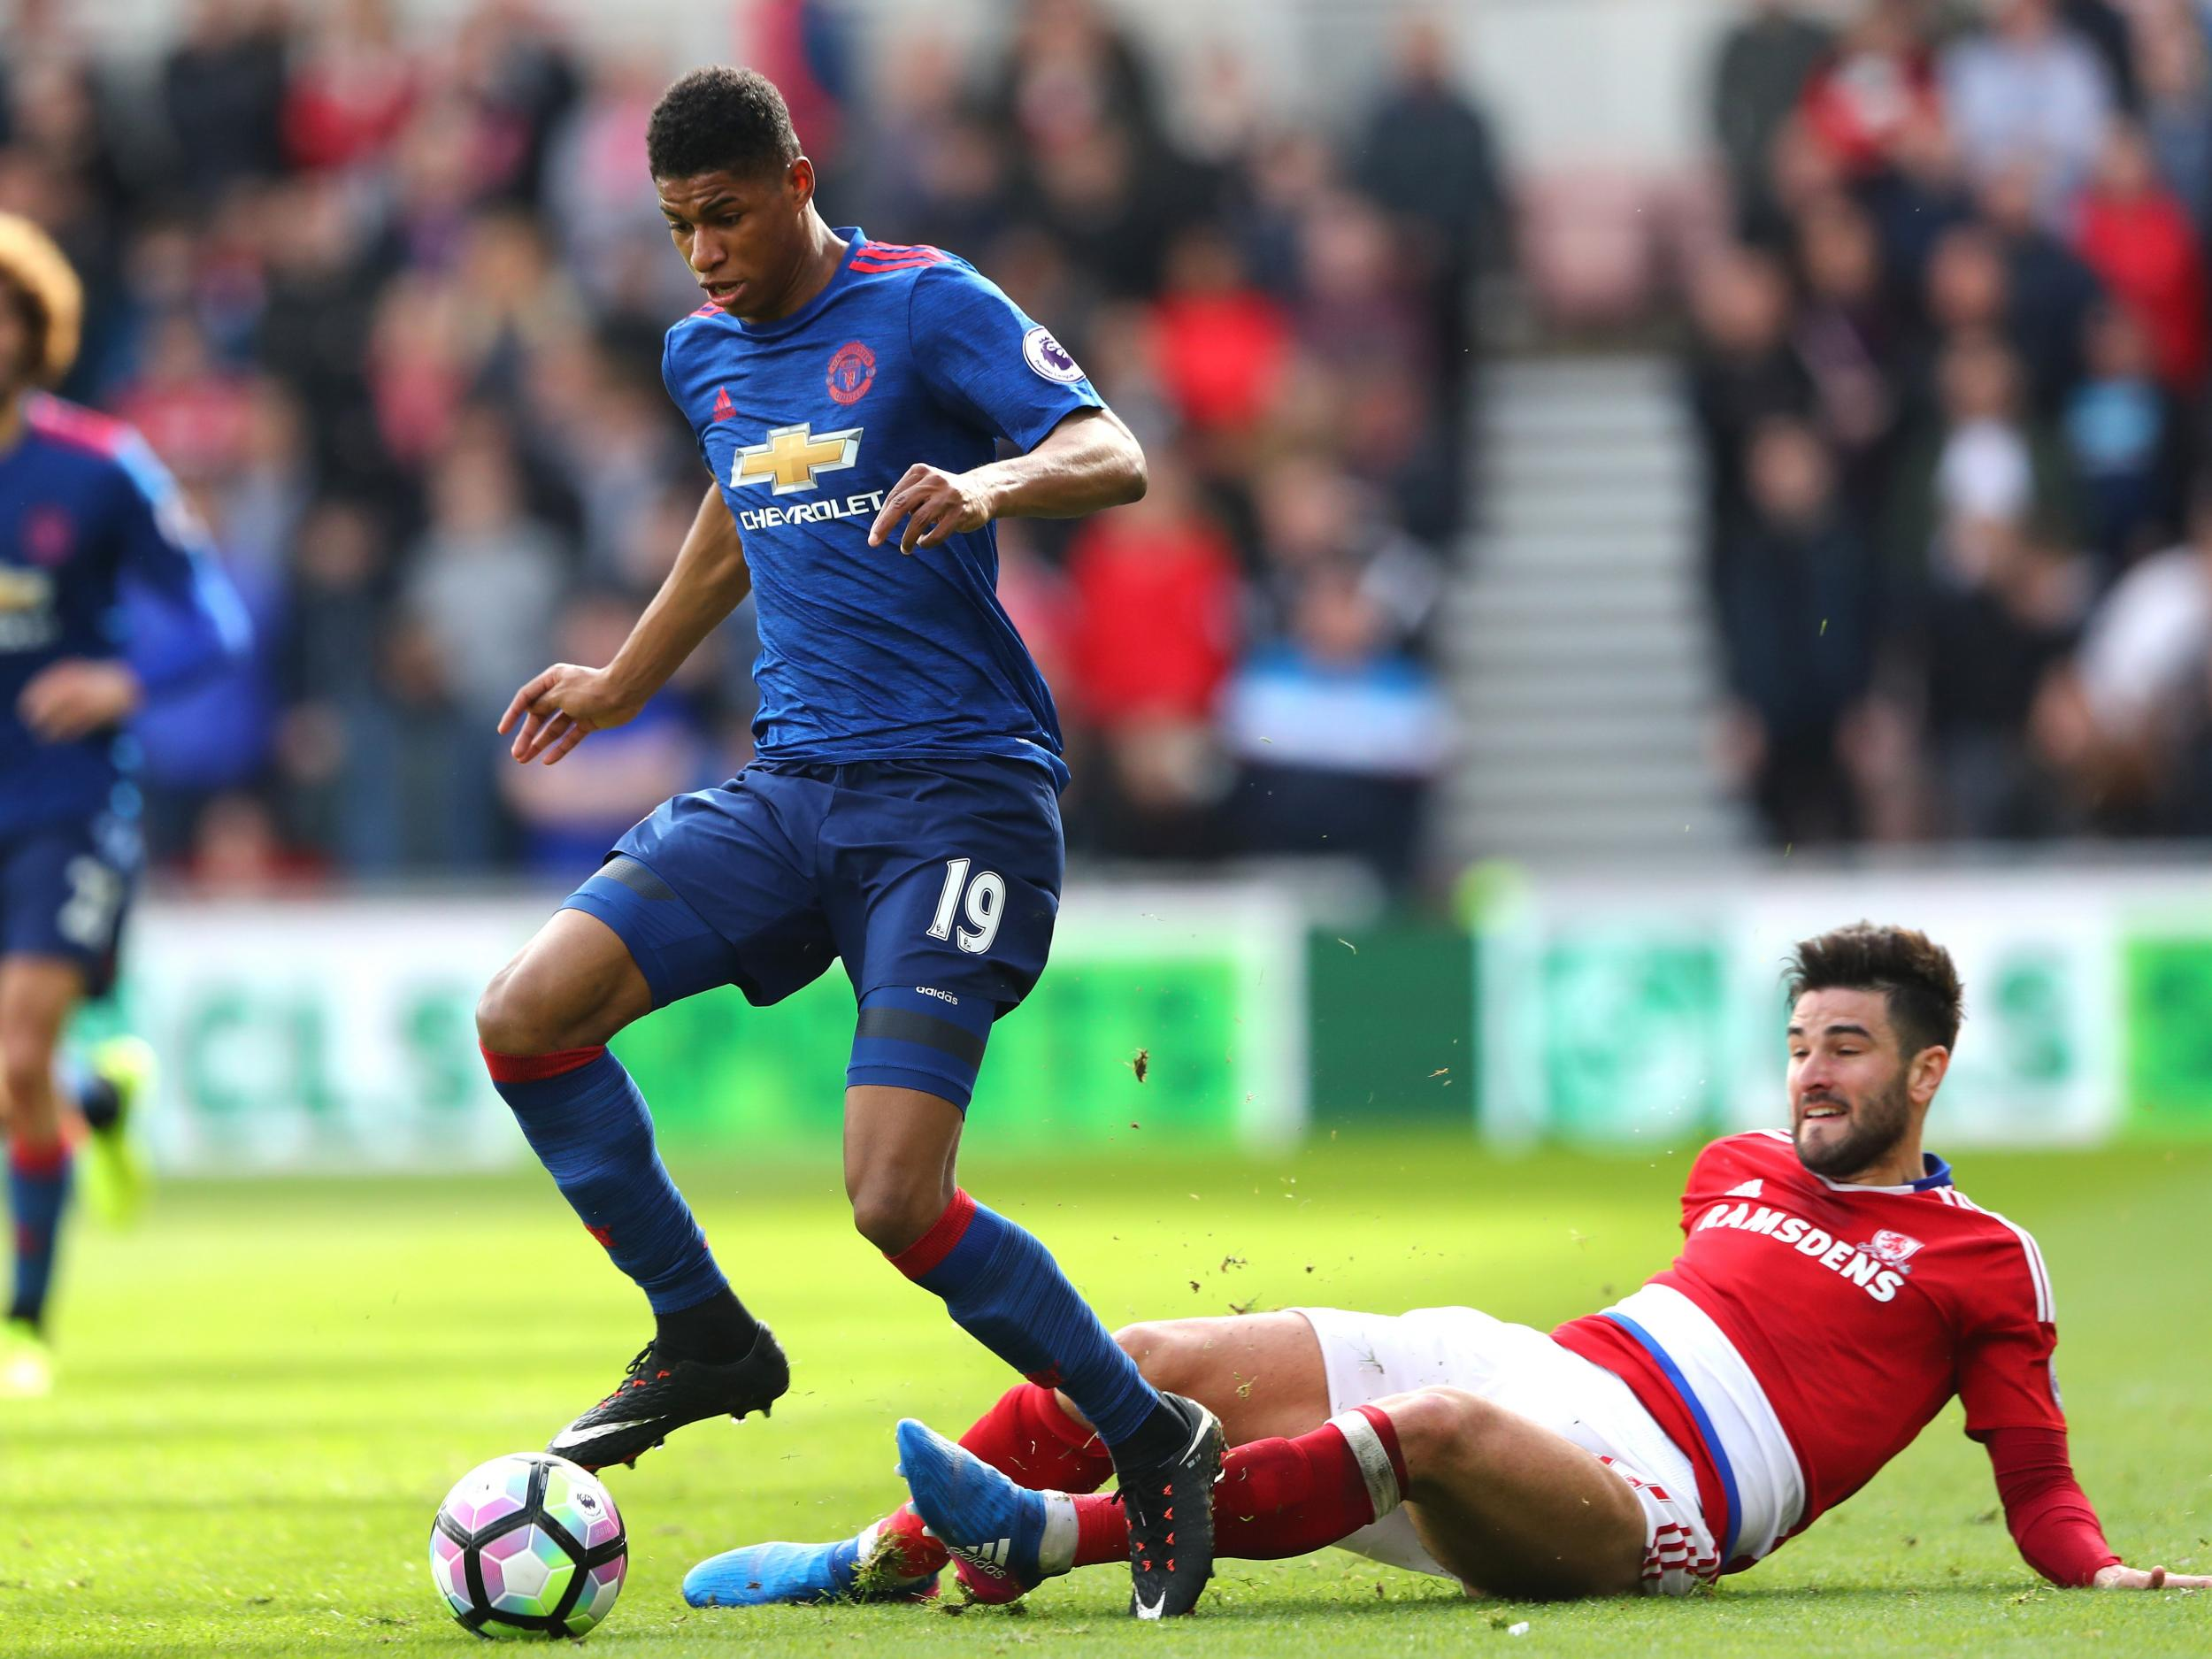 Middlesbrough vs Manchester United player ratings: Jesse